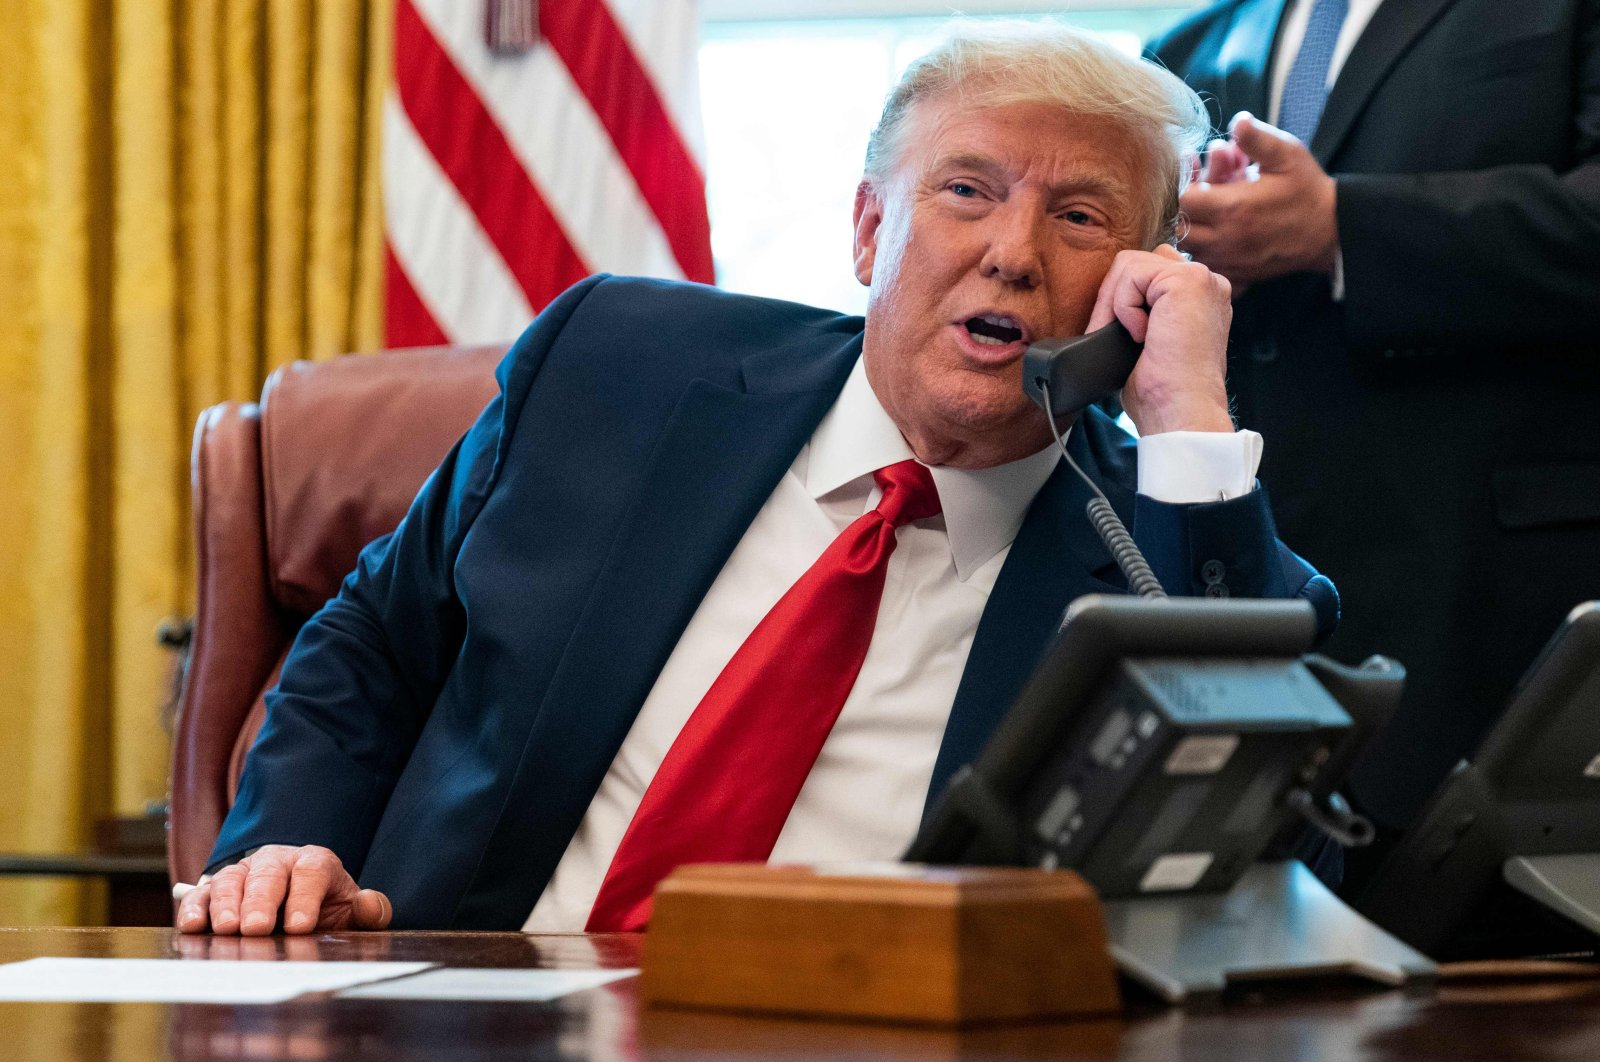 In this file photo taken on October 23, 2020 US President Donald Trump speaks to the leaders of Sudan and Israel as he announces that Sudan will normalize relations with Israel at the White House in Washington, DC, on October 23, 2020. (AFP Photo)